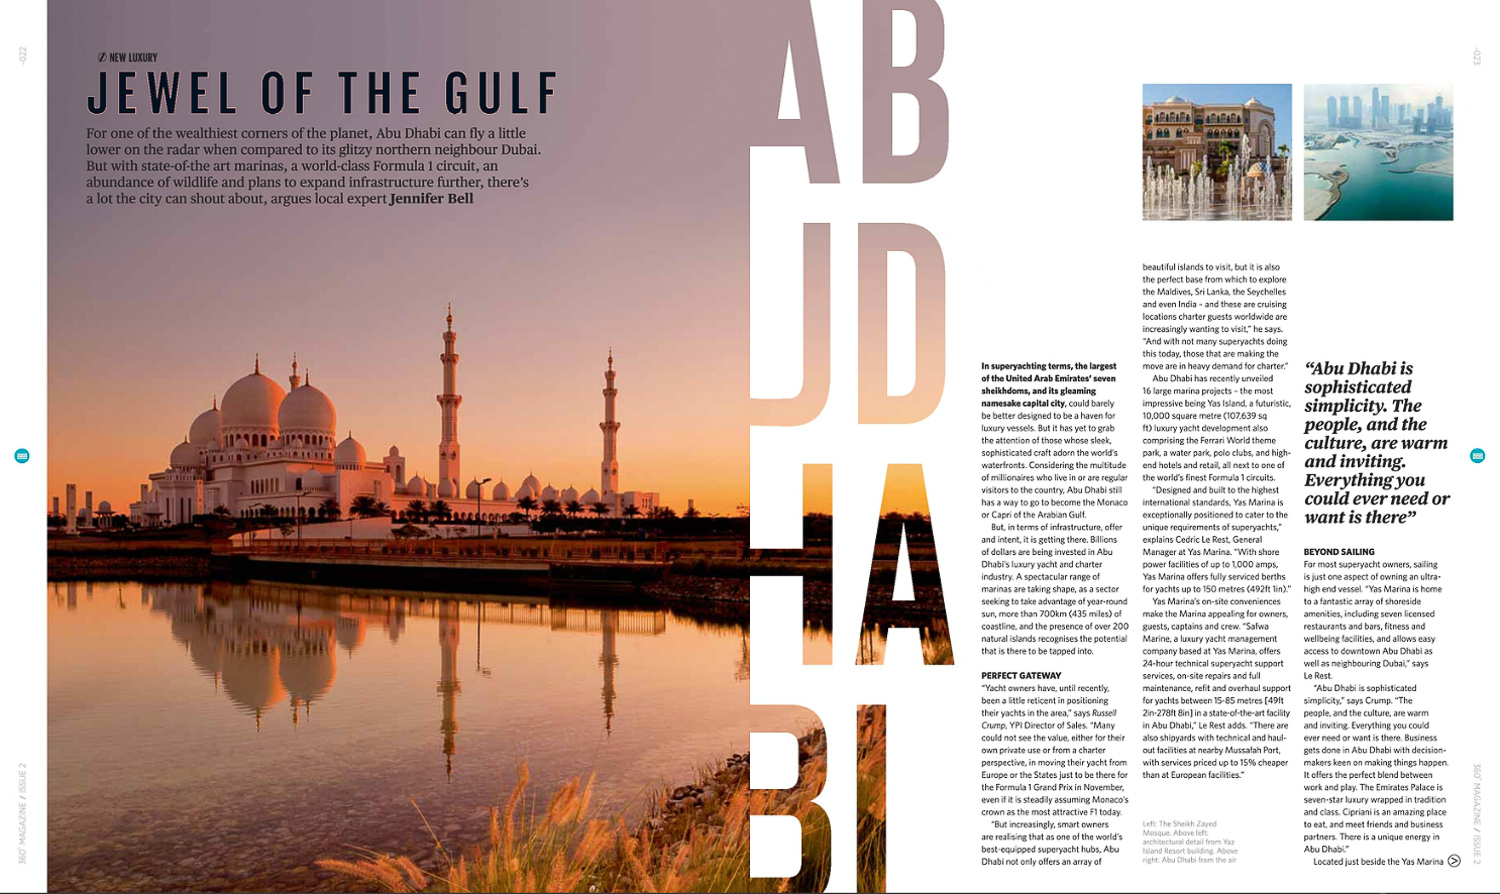 Image: An example of a travel article in 360ºMagazine by Jennifer Bell.